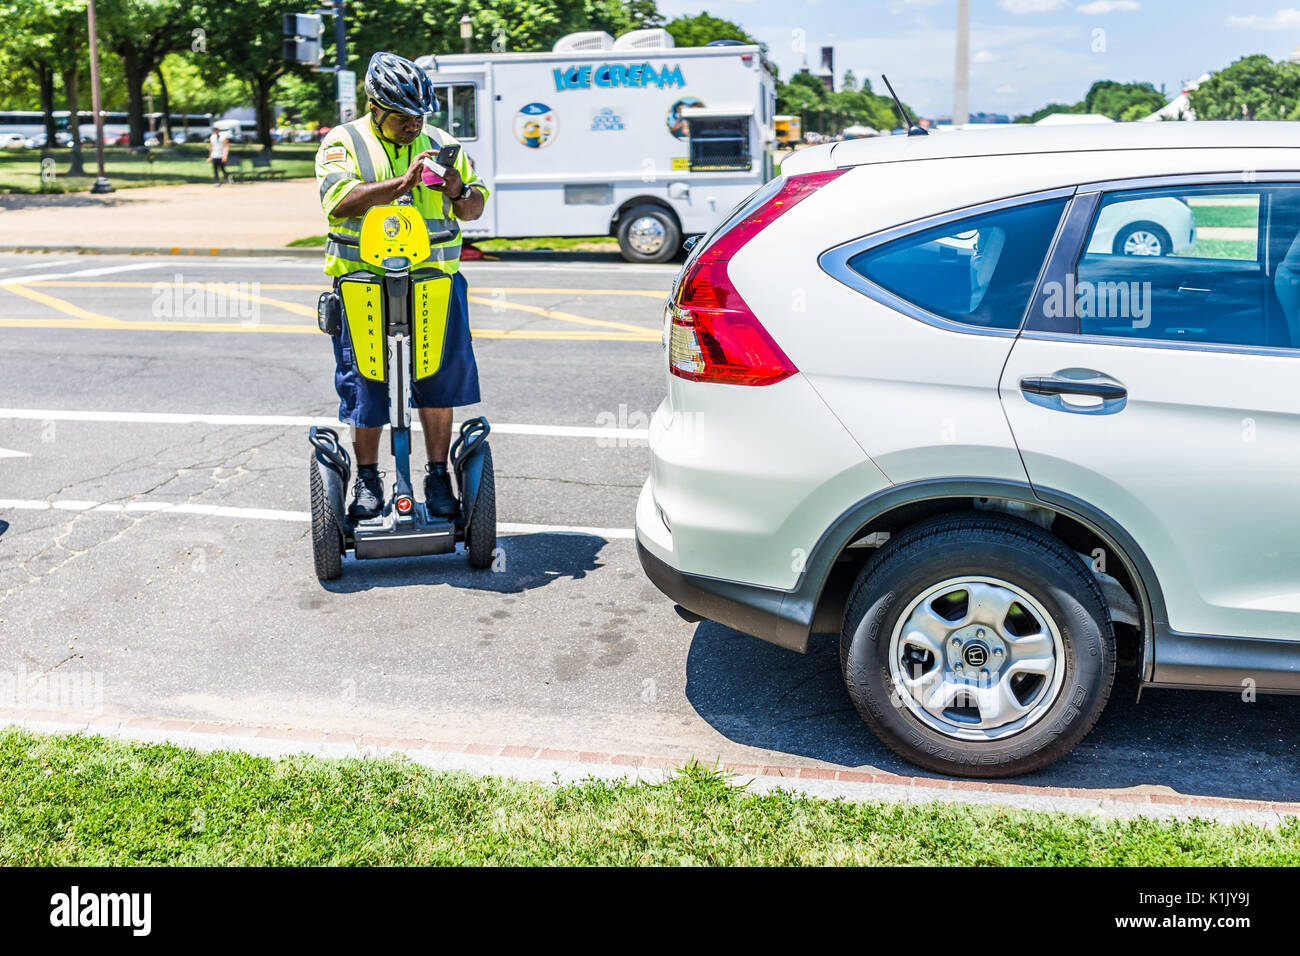 Washington DC, USA - July 3, 2017: Police traffic officer writing ticket for car illegally parked while riding segway on national mall - Stock Image